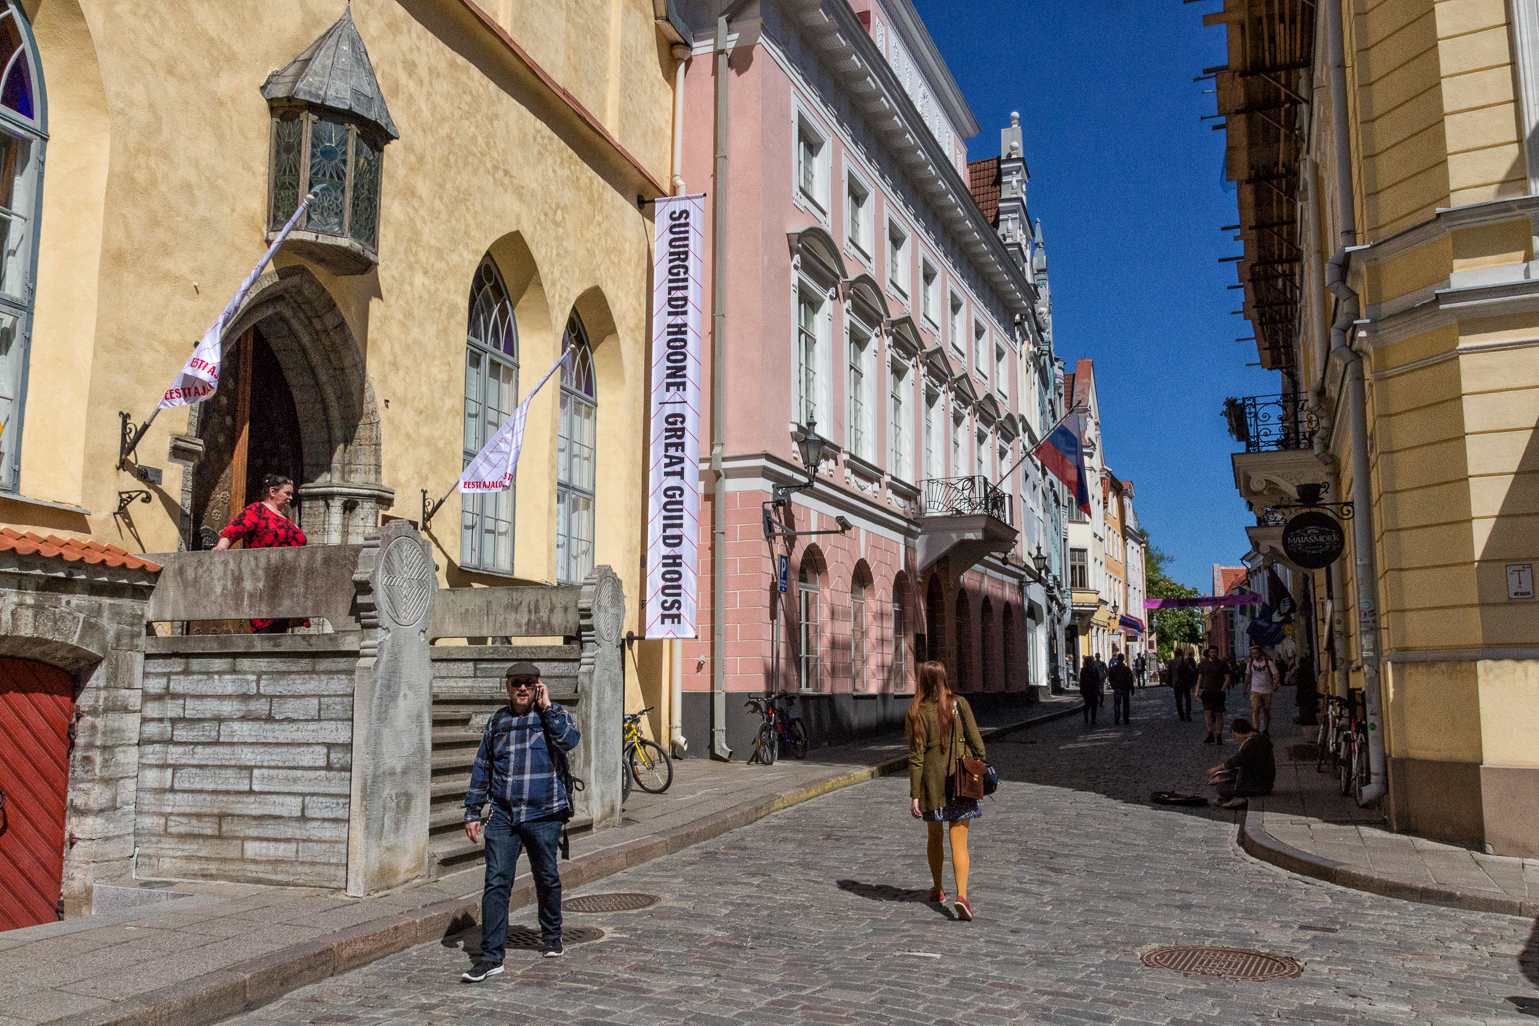 8 Best Tips for Successful Day Tripping to Tallinn, Estonia